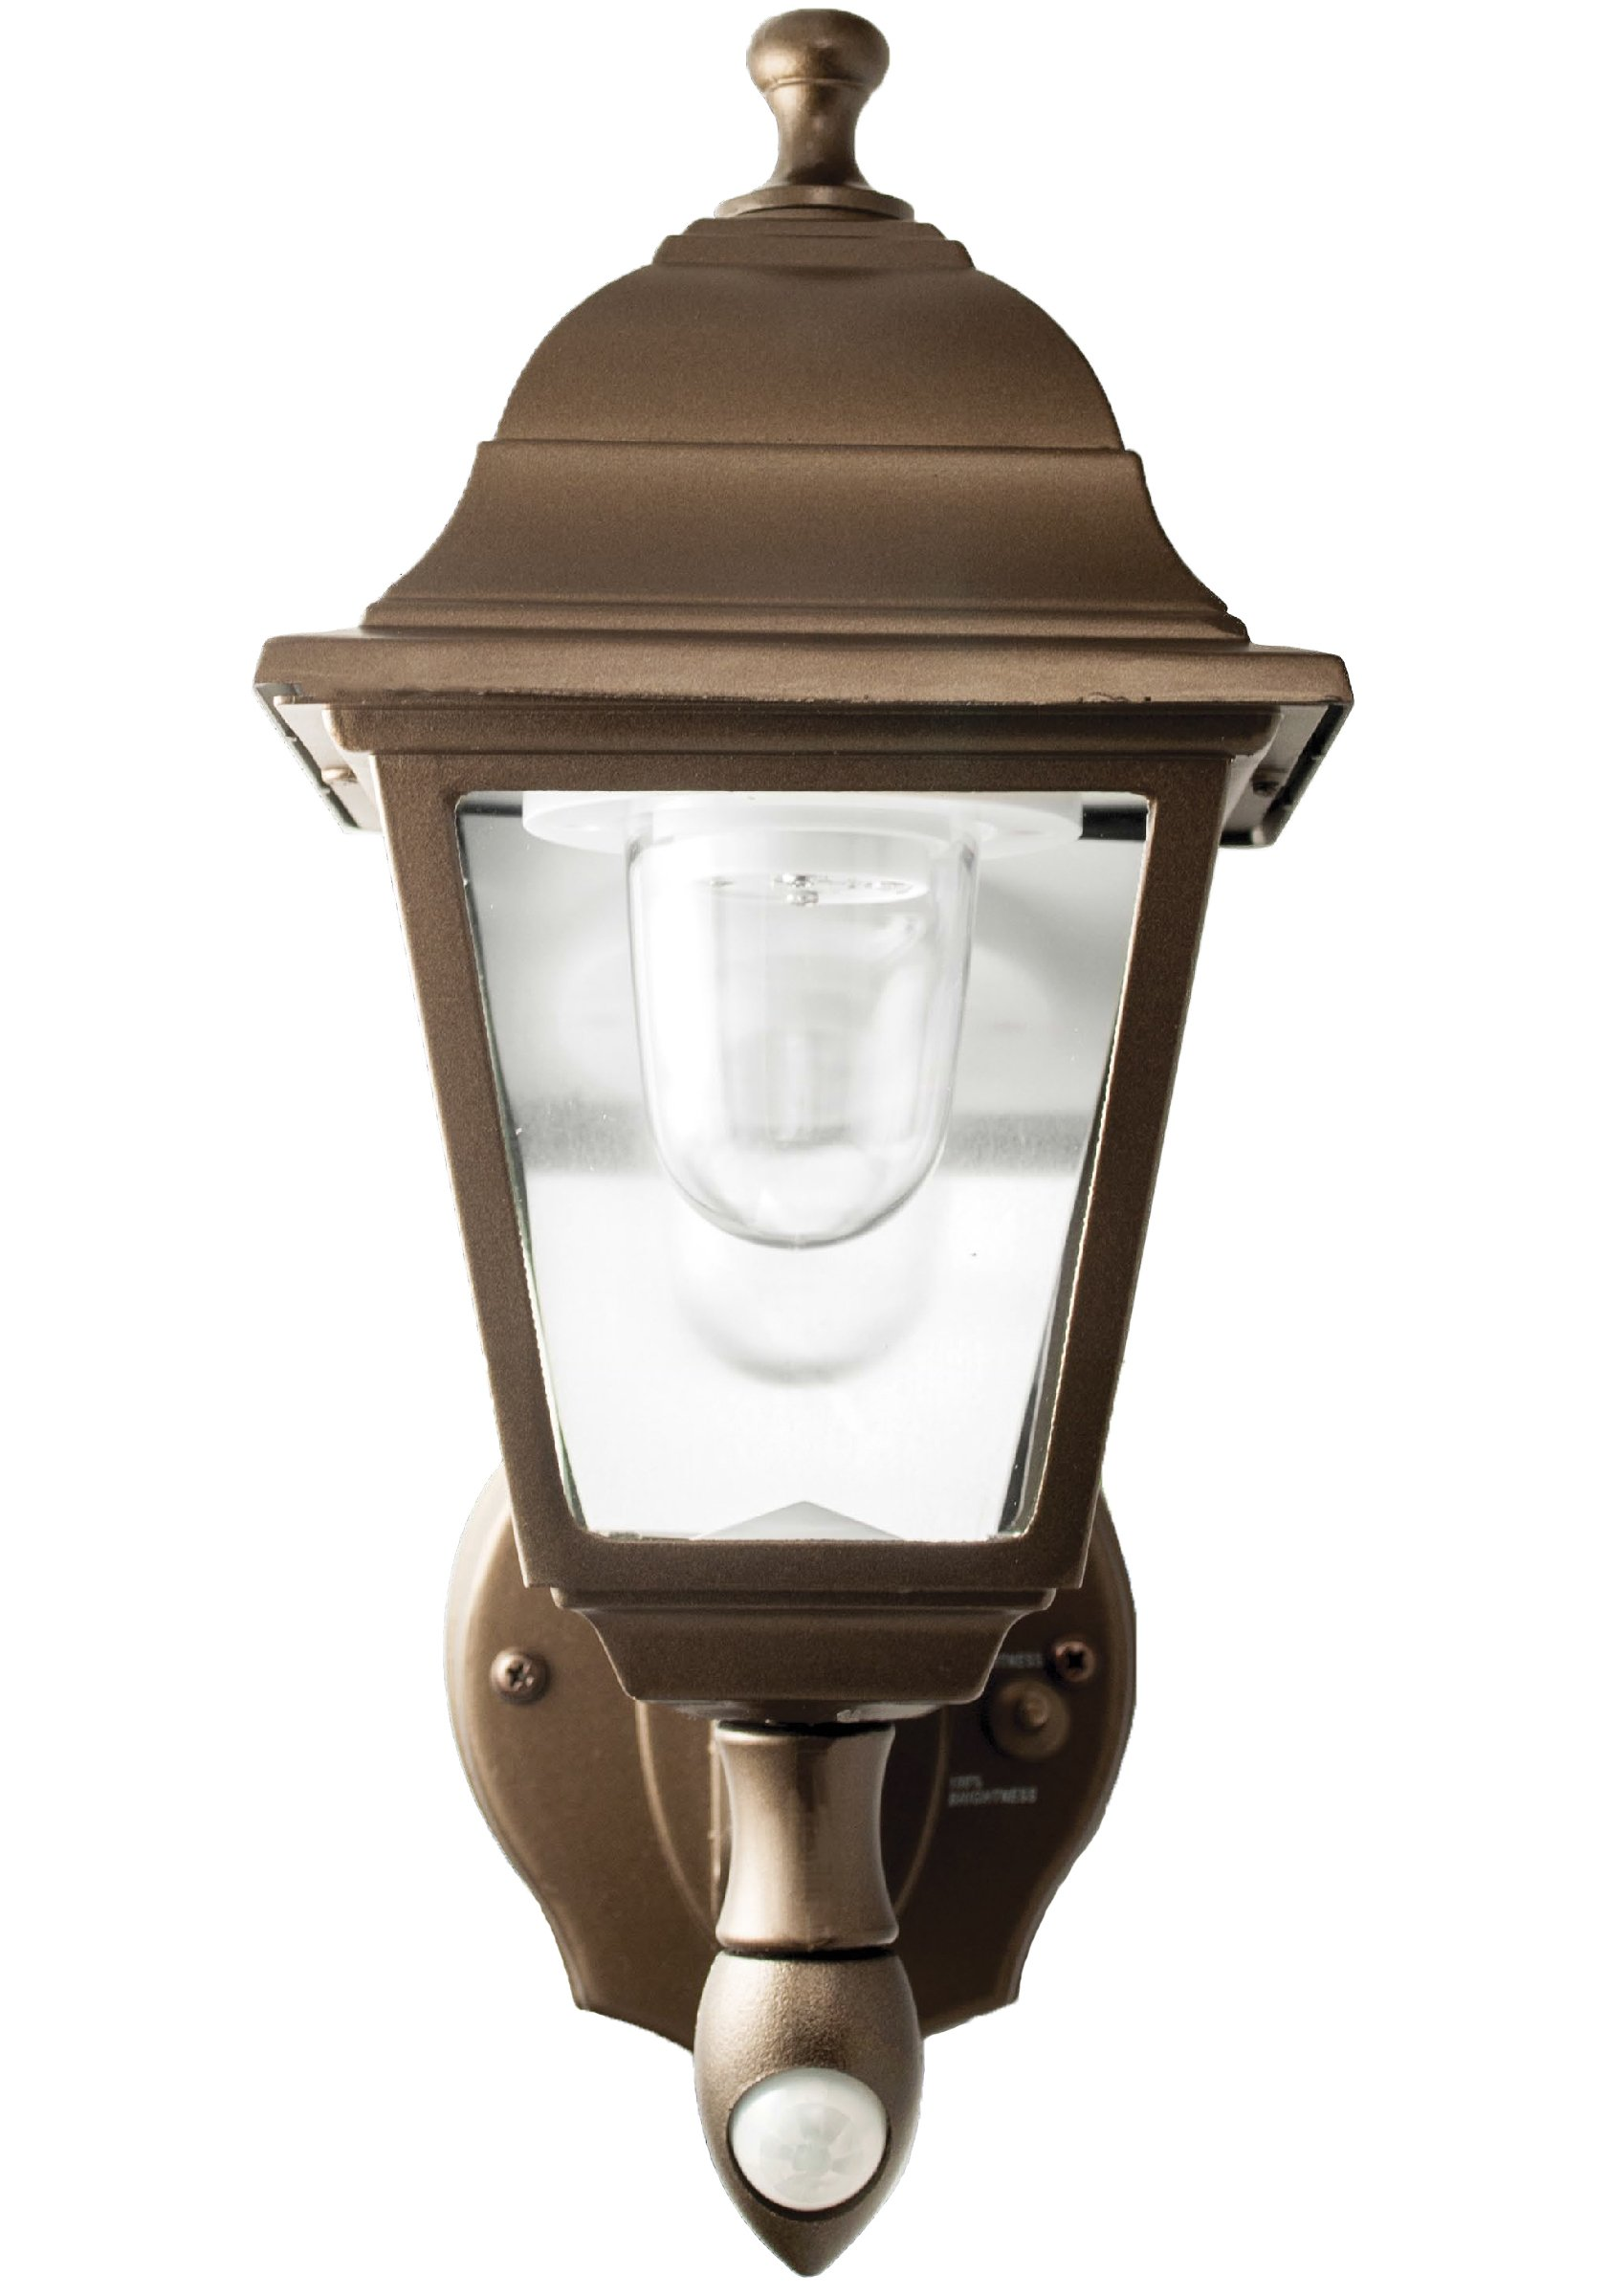 MAXSA LED Wall Sconce, Battery-Powered & Motion-Activated Outdoor Decorative Light. Wireless, Metal & Glass Construction, Dark Bronze 46219